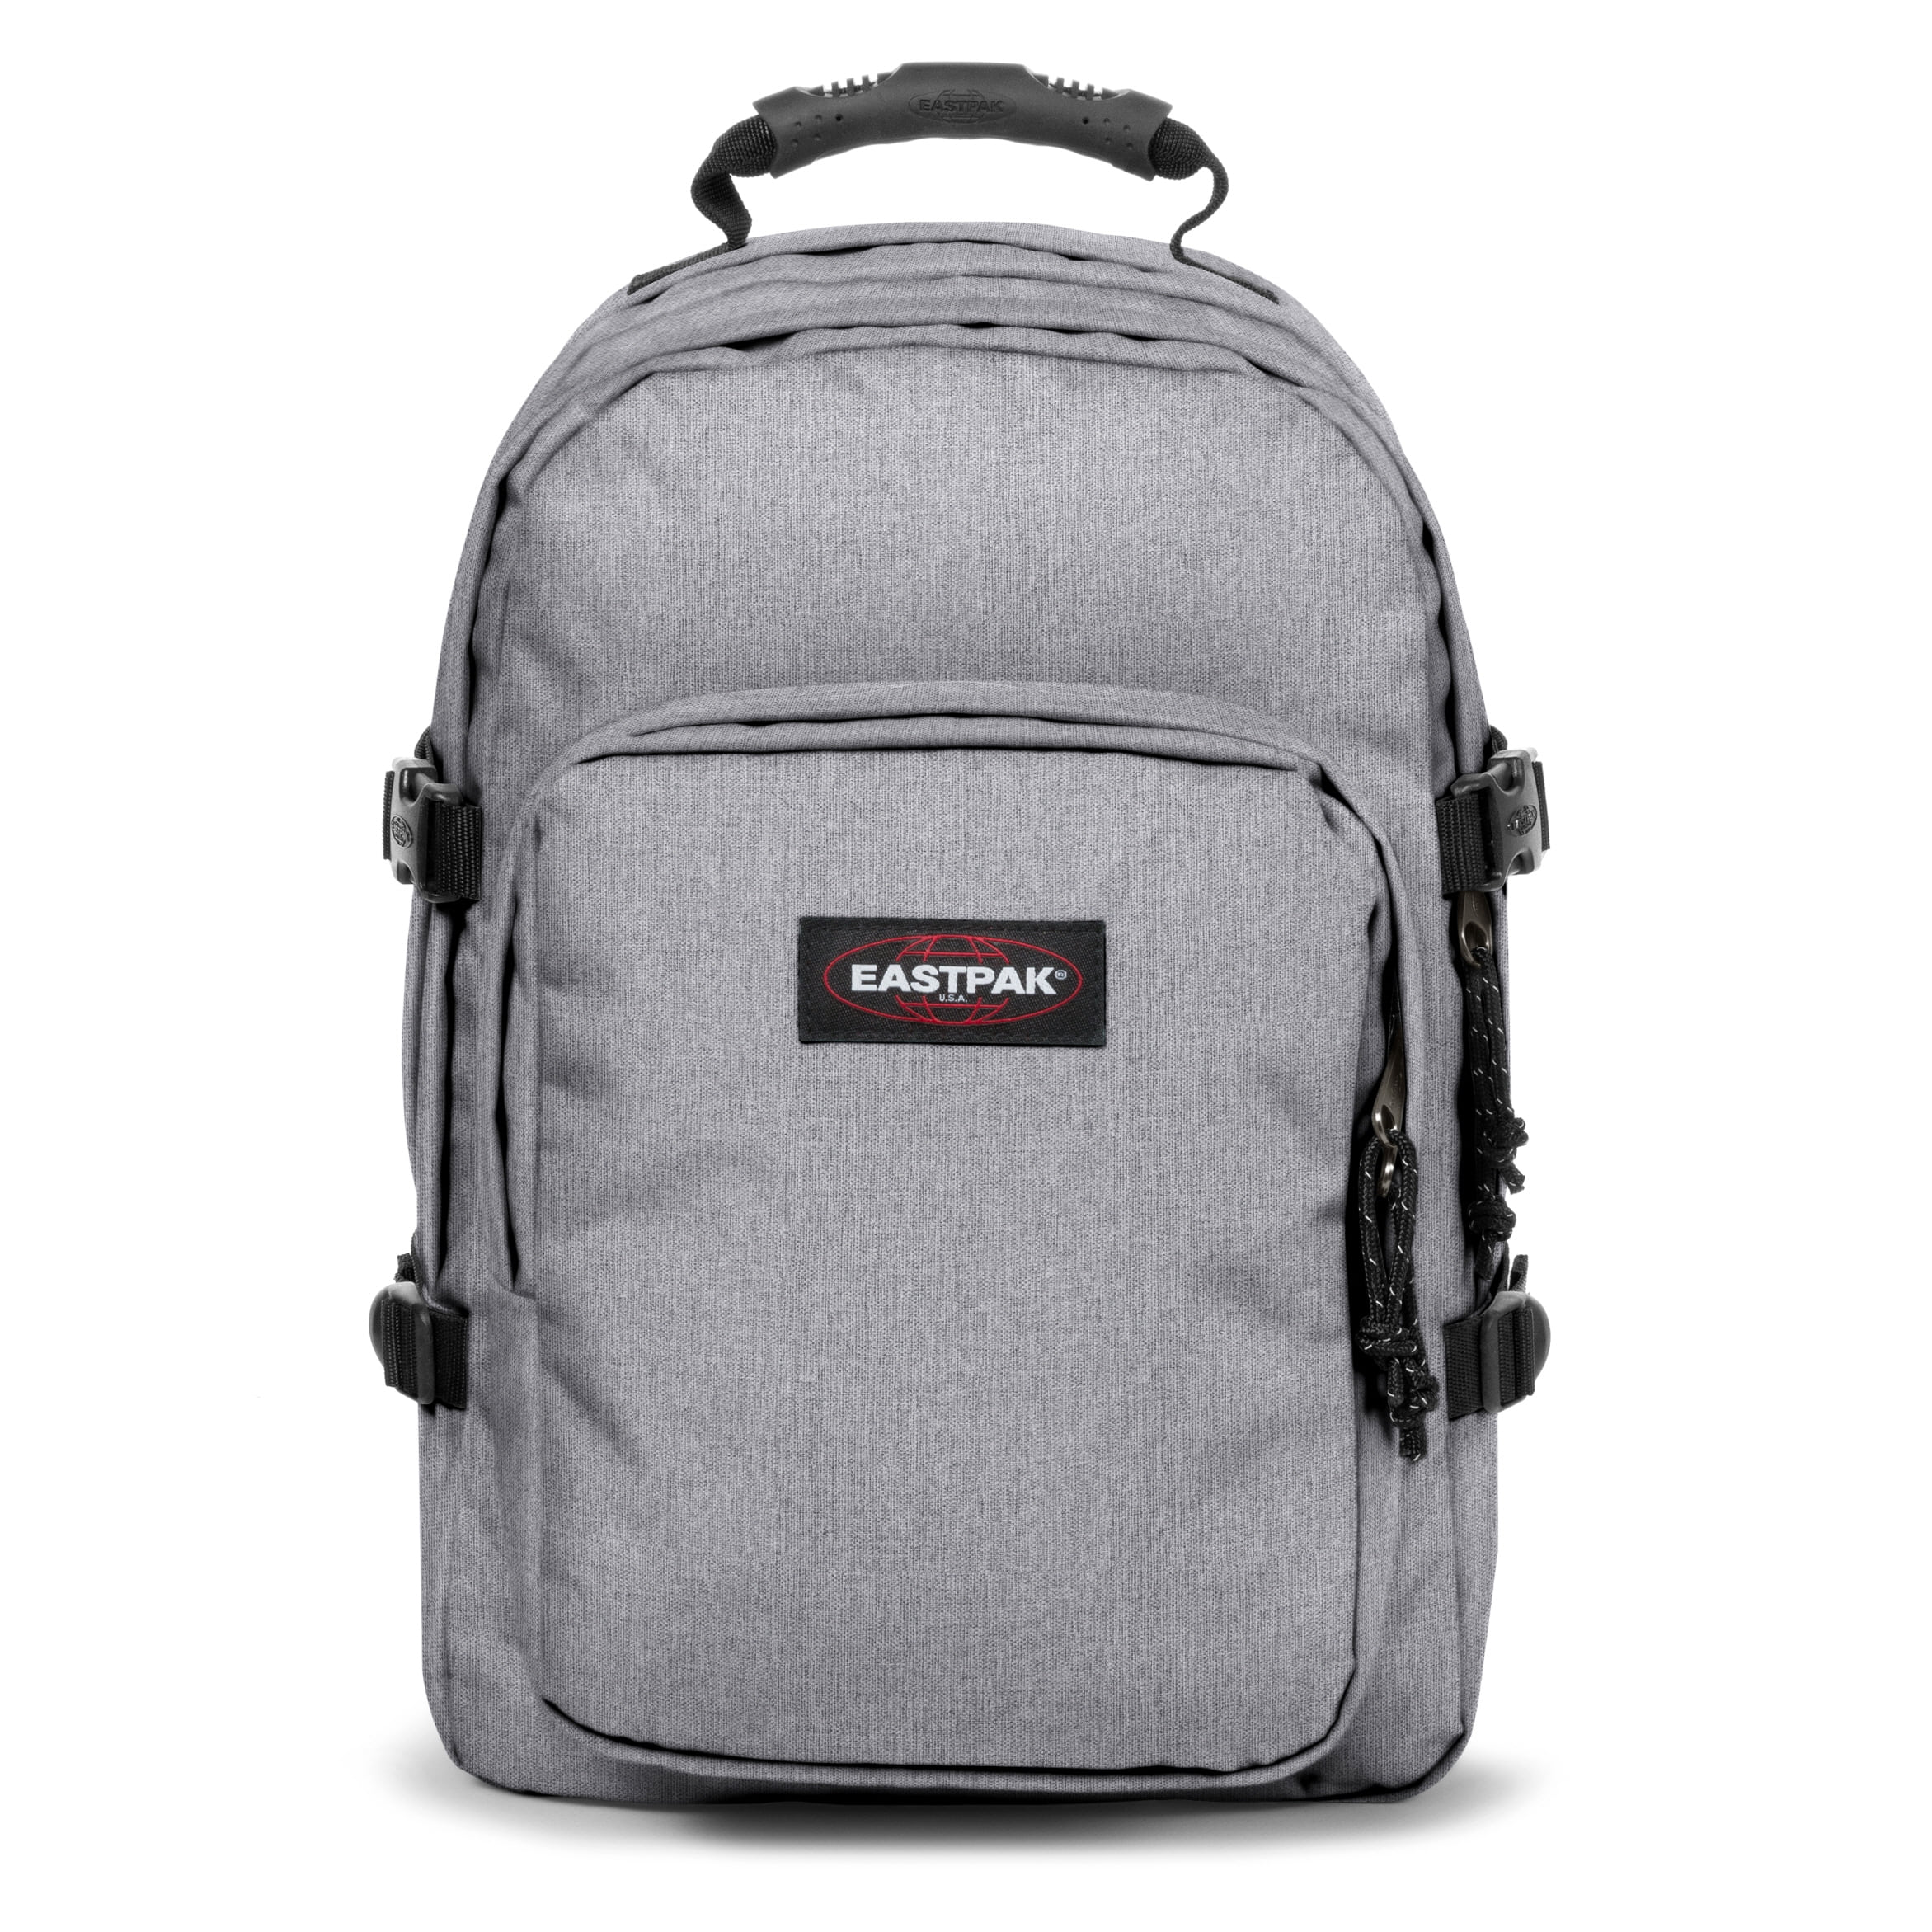 [EASTPAK] AUTHENTIC 백팩 프로바이더 EIABA08 363